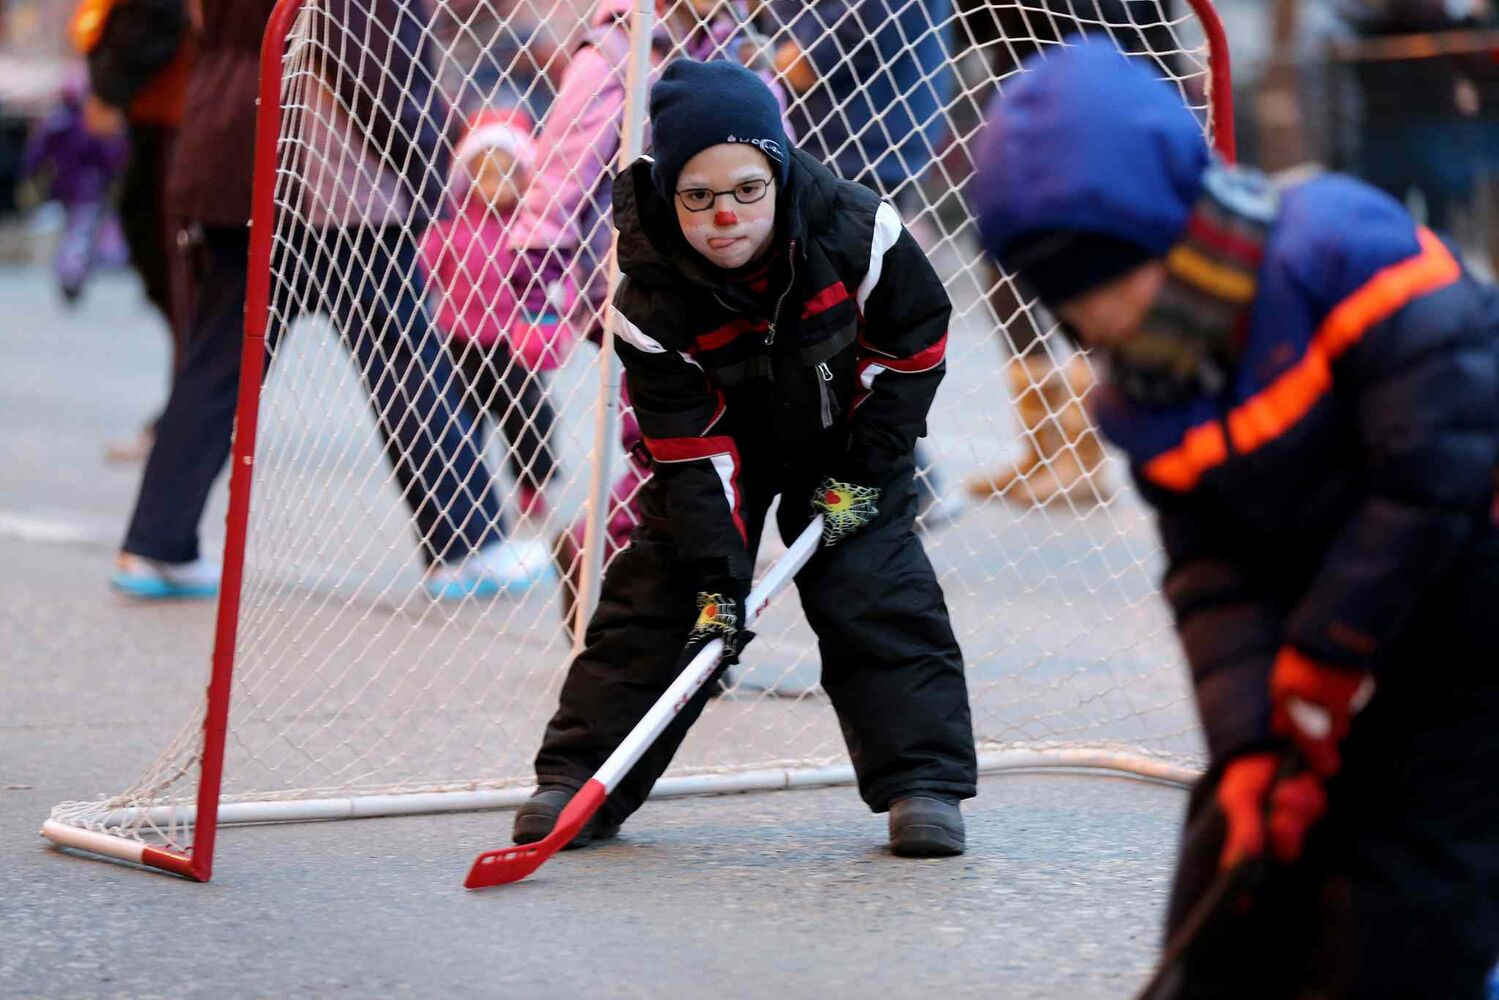 A game of street hockey kept kids busy while waiting for Santa. (TREVOR HAGAN / WINNIPEG FREE PRESS)